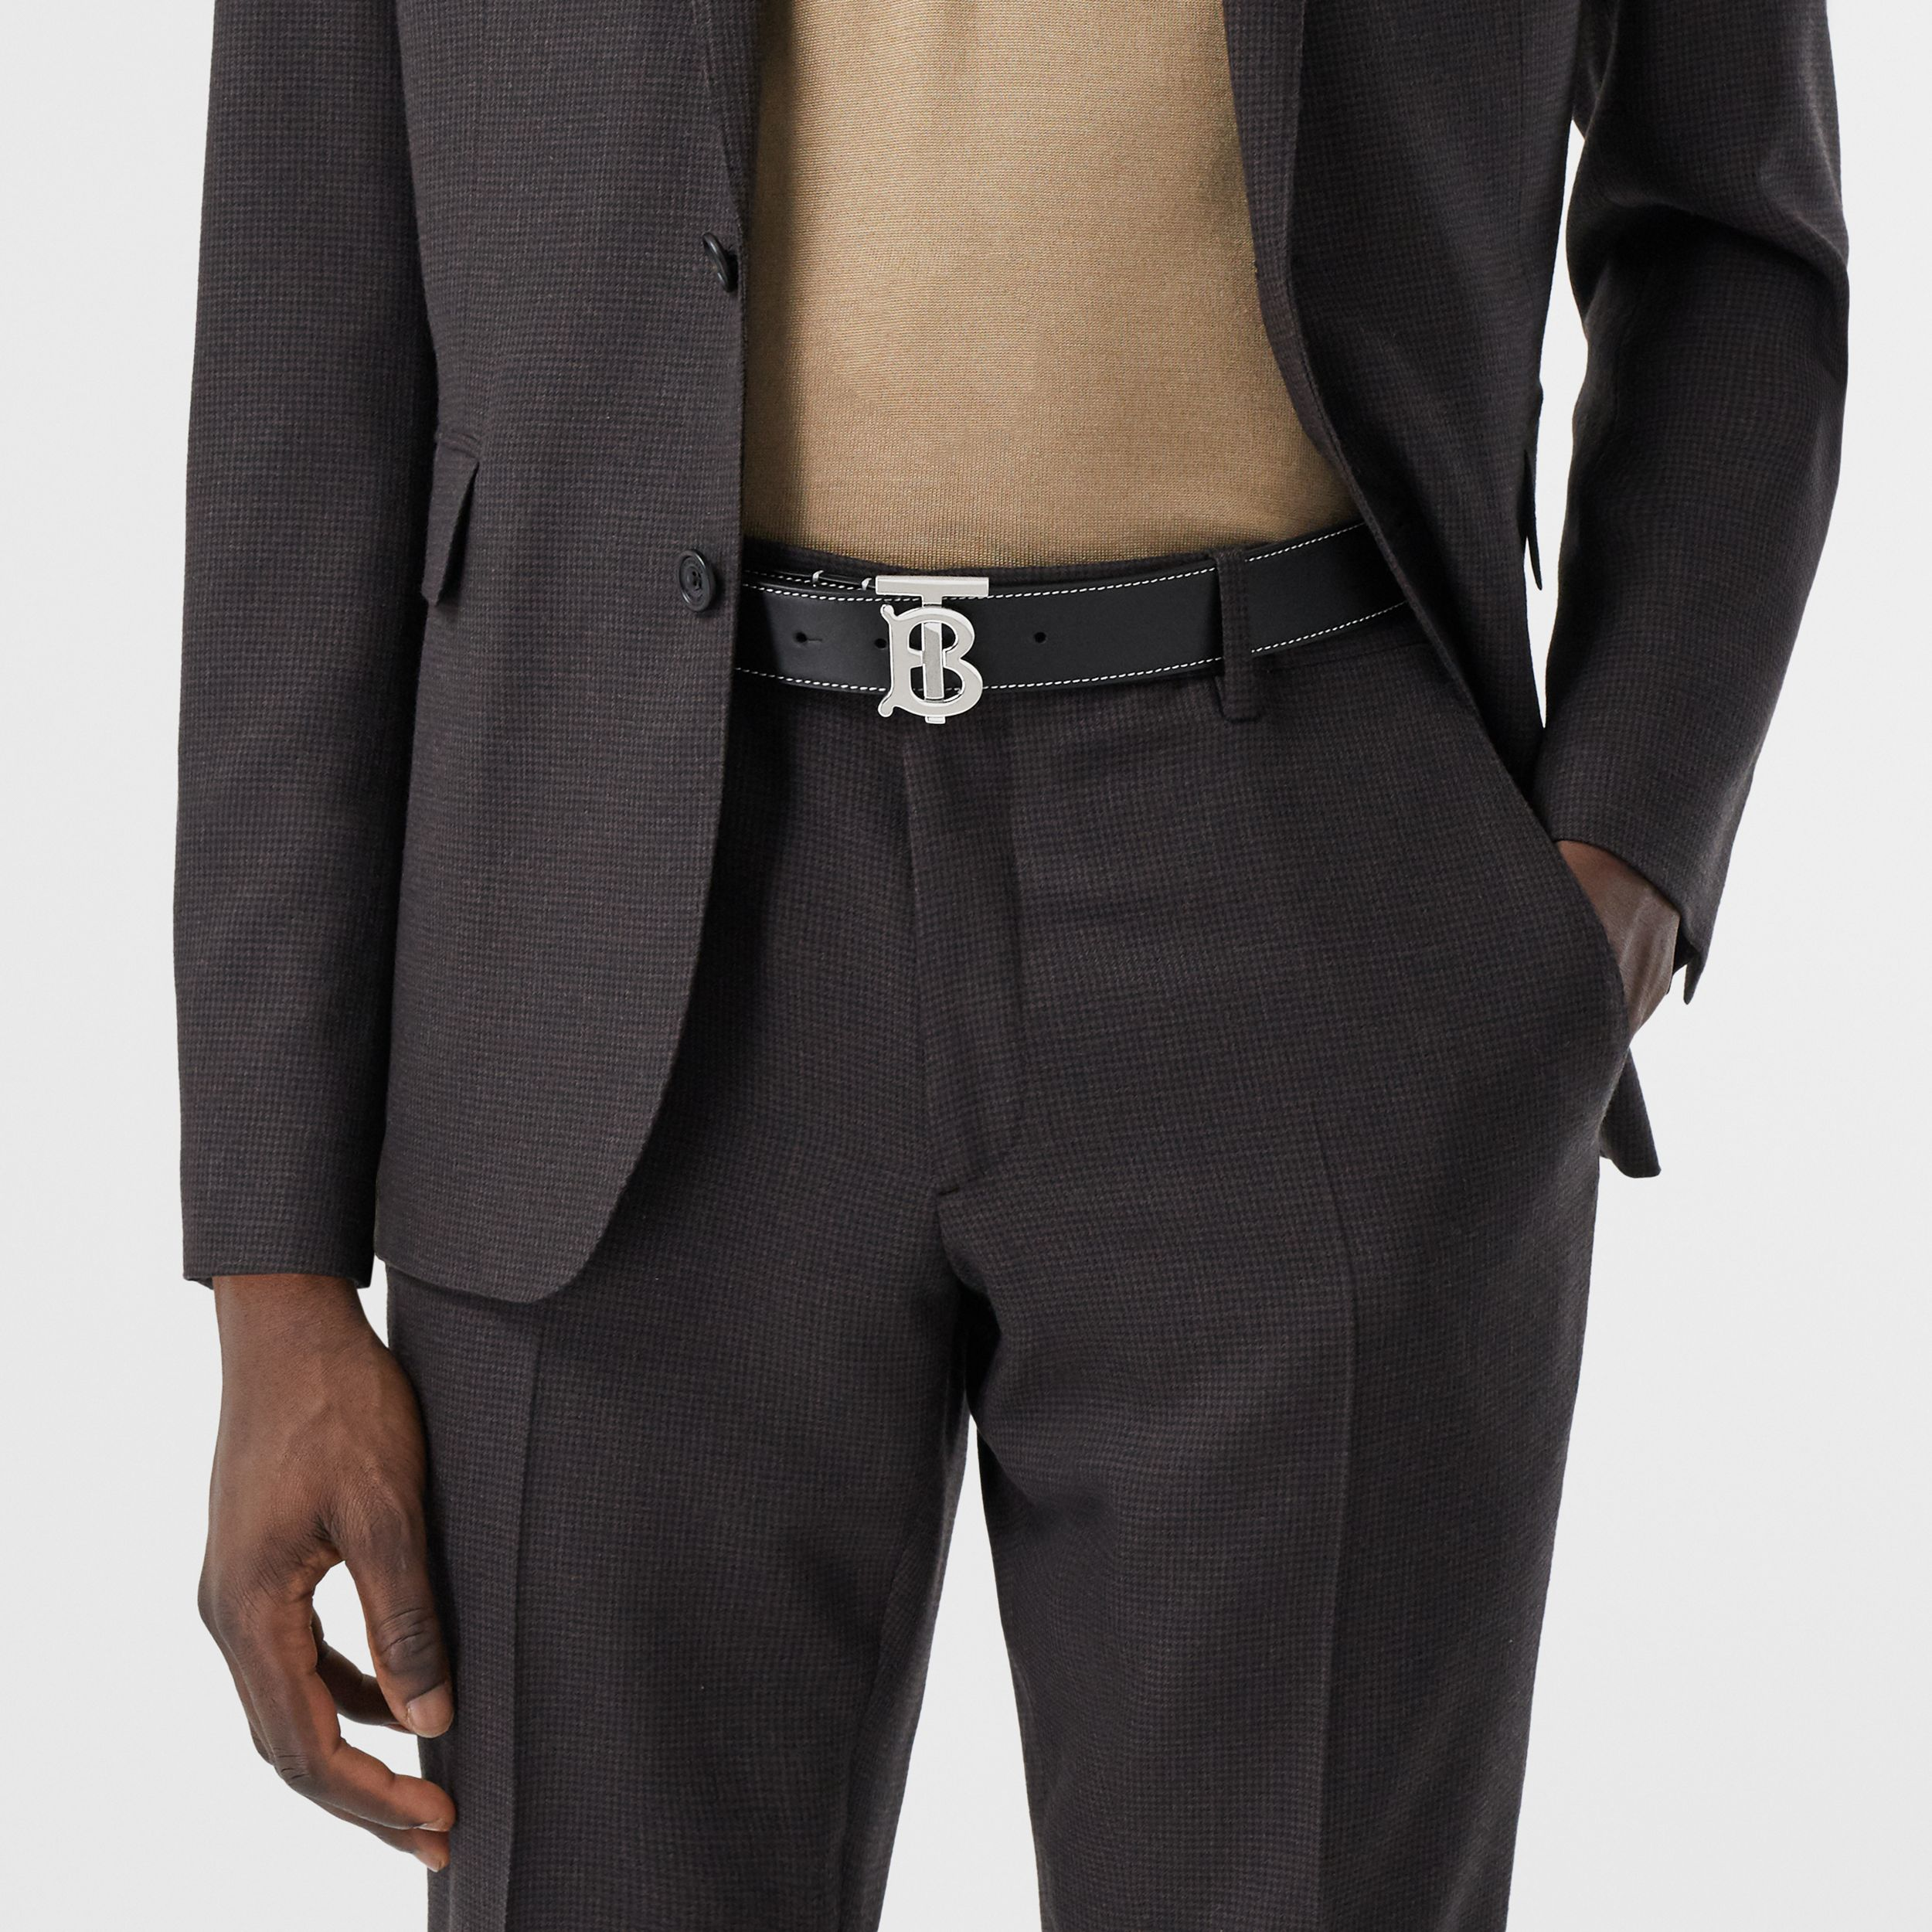 Monogram Motif Topstitched Leather Belt in Black - Men | Burberry Hong Kong S.A.R. - 3